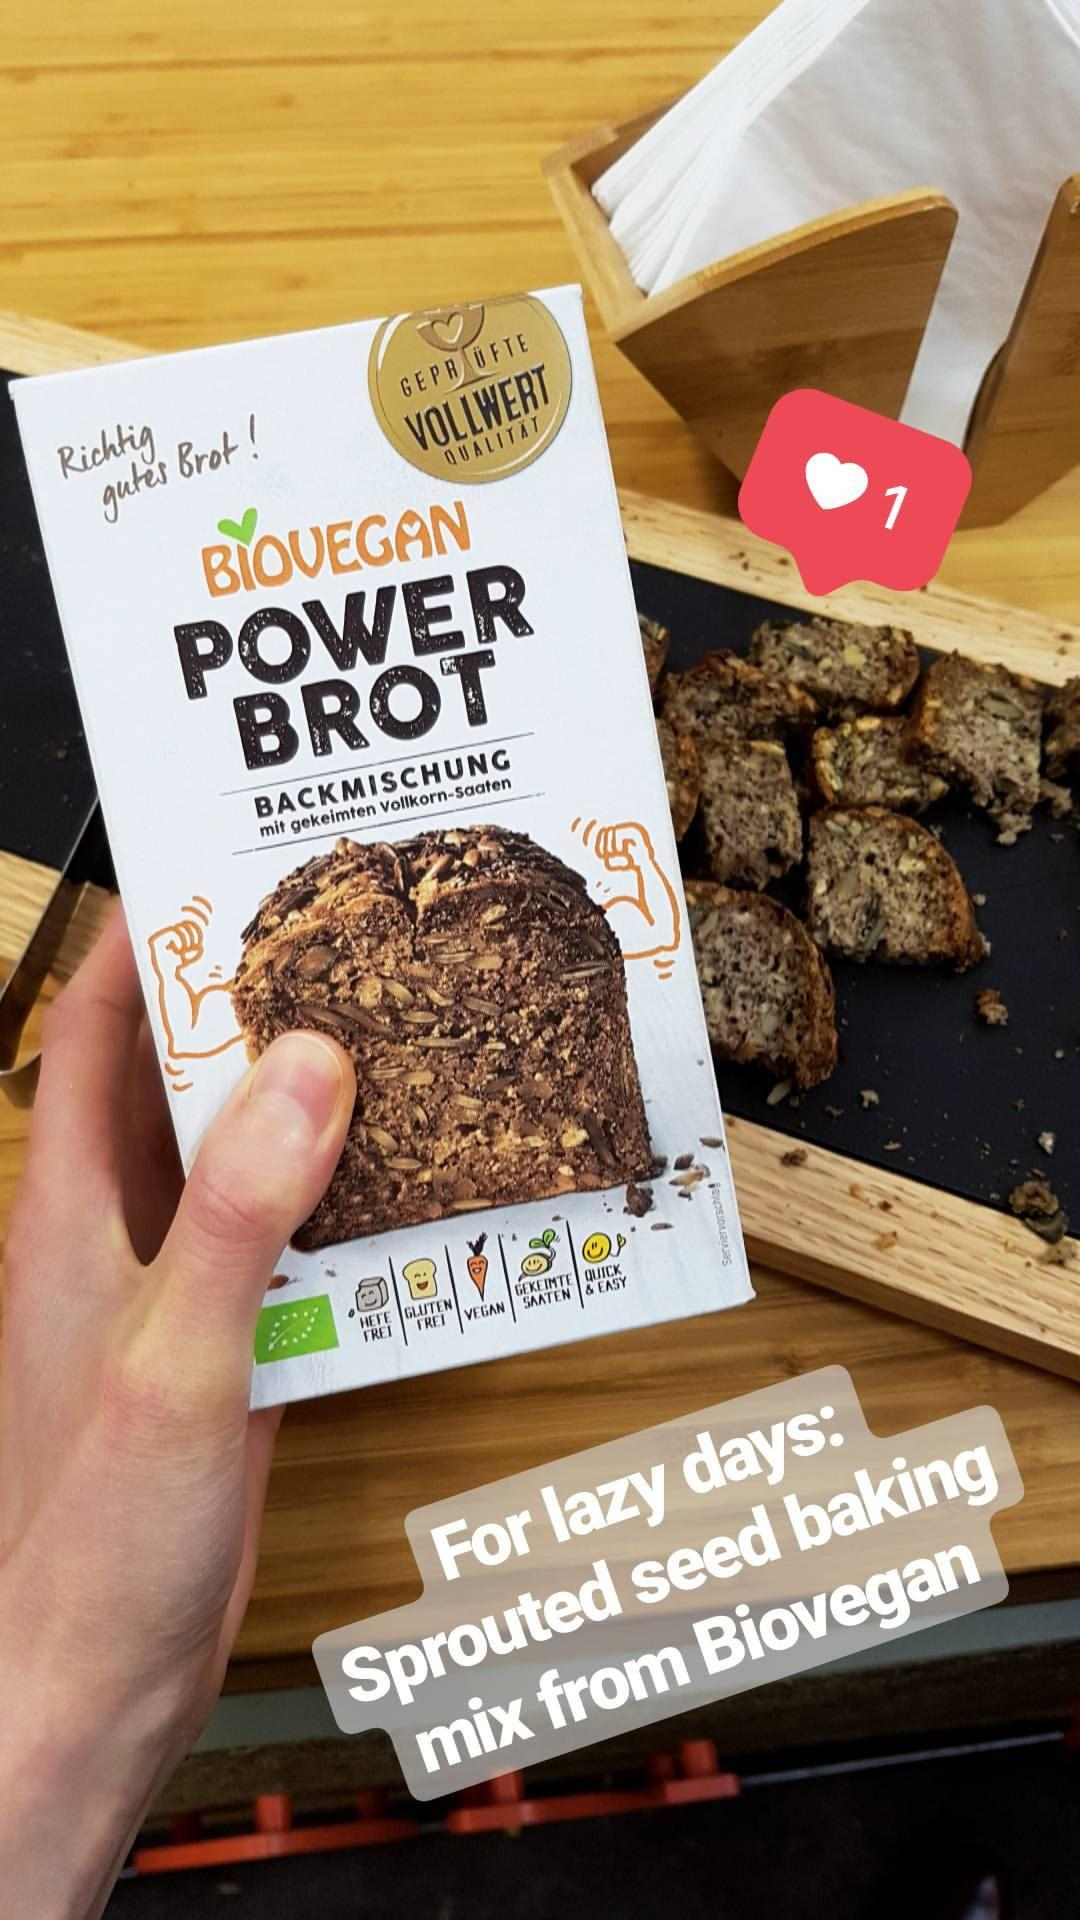 Biovegan Powerbrot